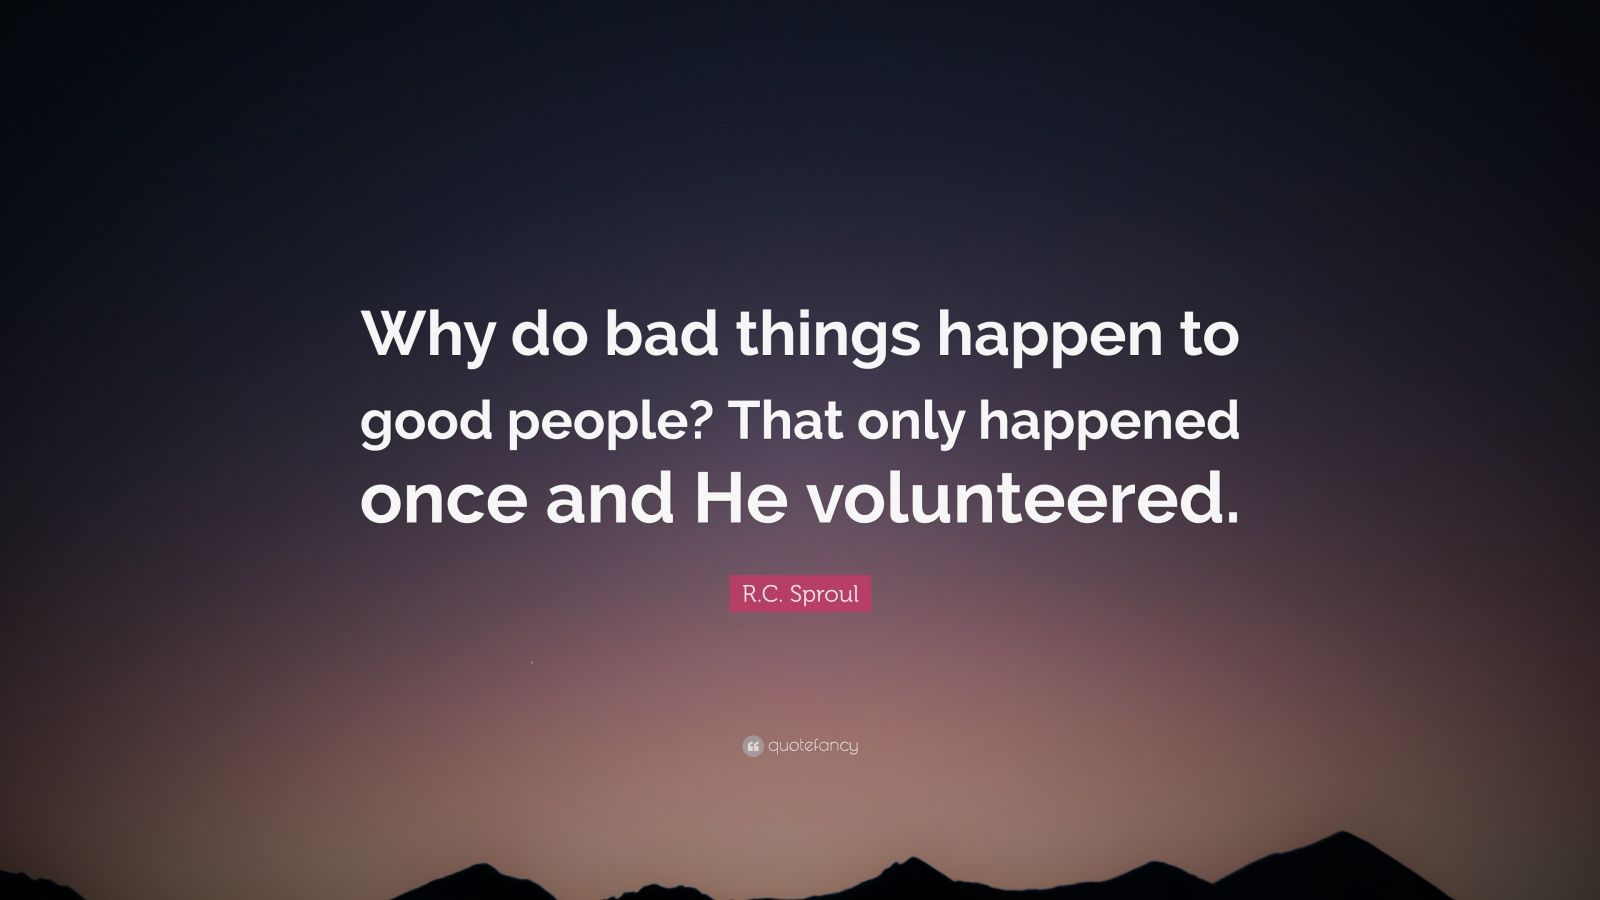 bad things happen you good people and So, why do bad things happen to good people there are several reasons this may happen, and the reasons are categorized by belief and non-belief of a higher powerthere are reasons which vary greatly from the jewish, pagan, atheist, and christian perspective, just to name a few.